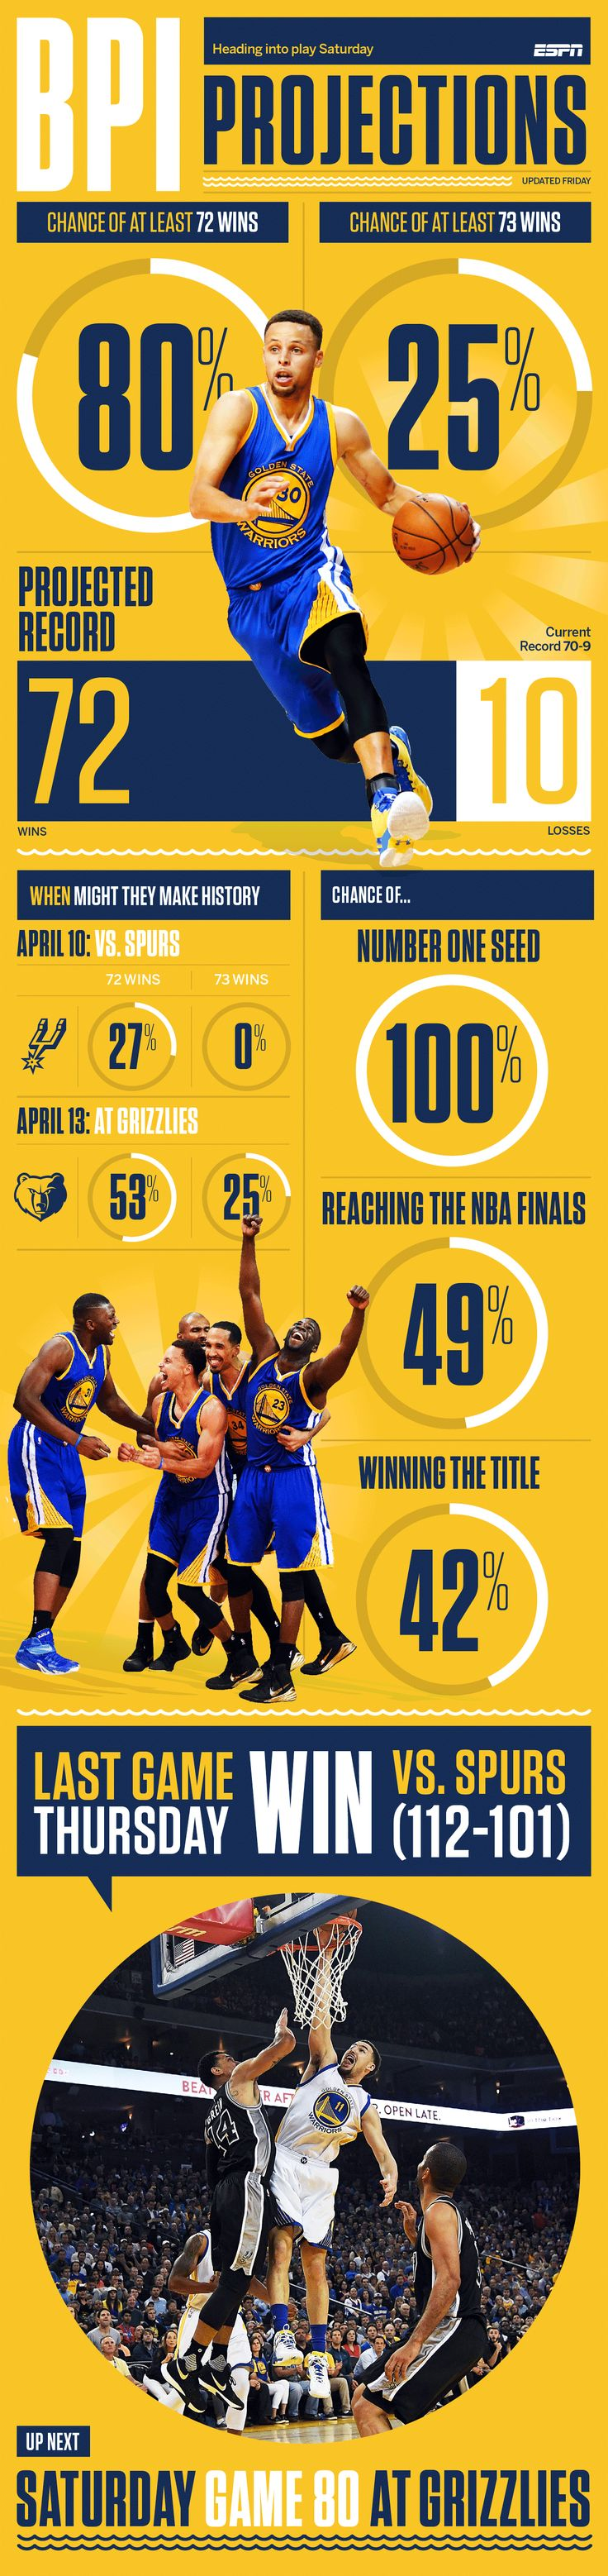 After beating the Spurs in Oakland, the Warriors must win all three of their remaining games to set the NBA record with 73 wins.